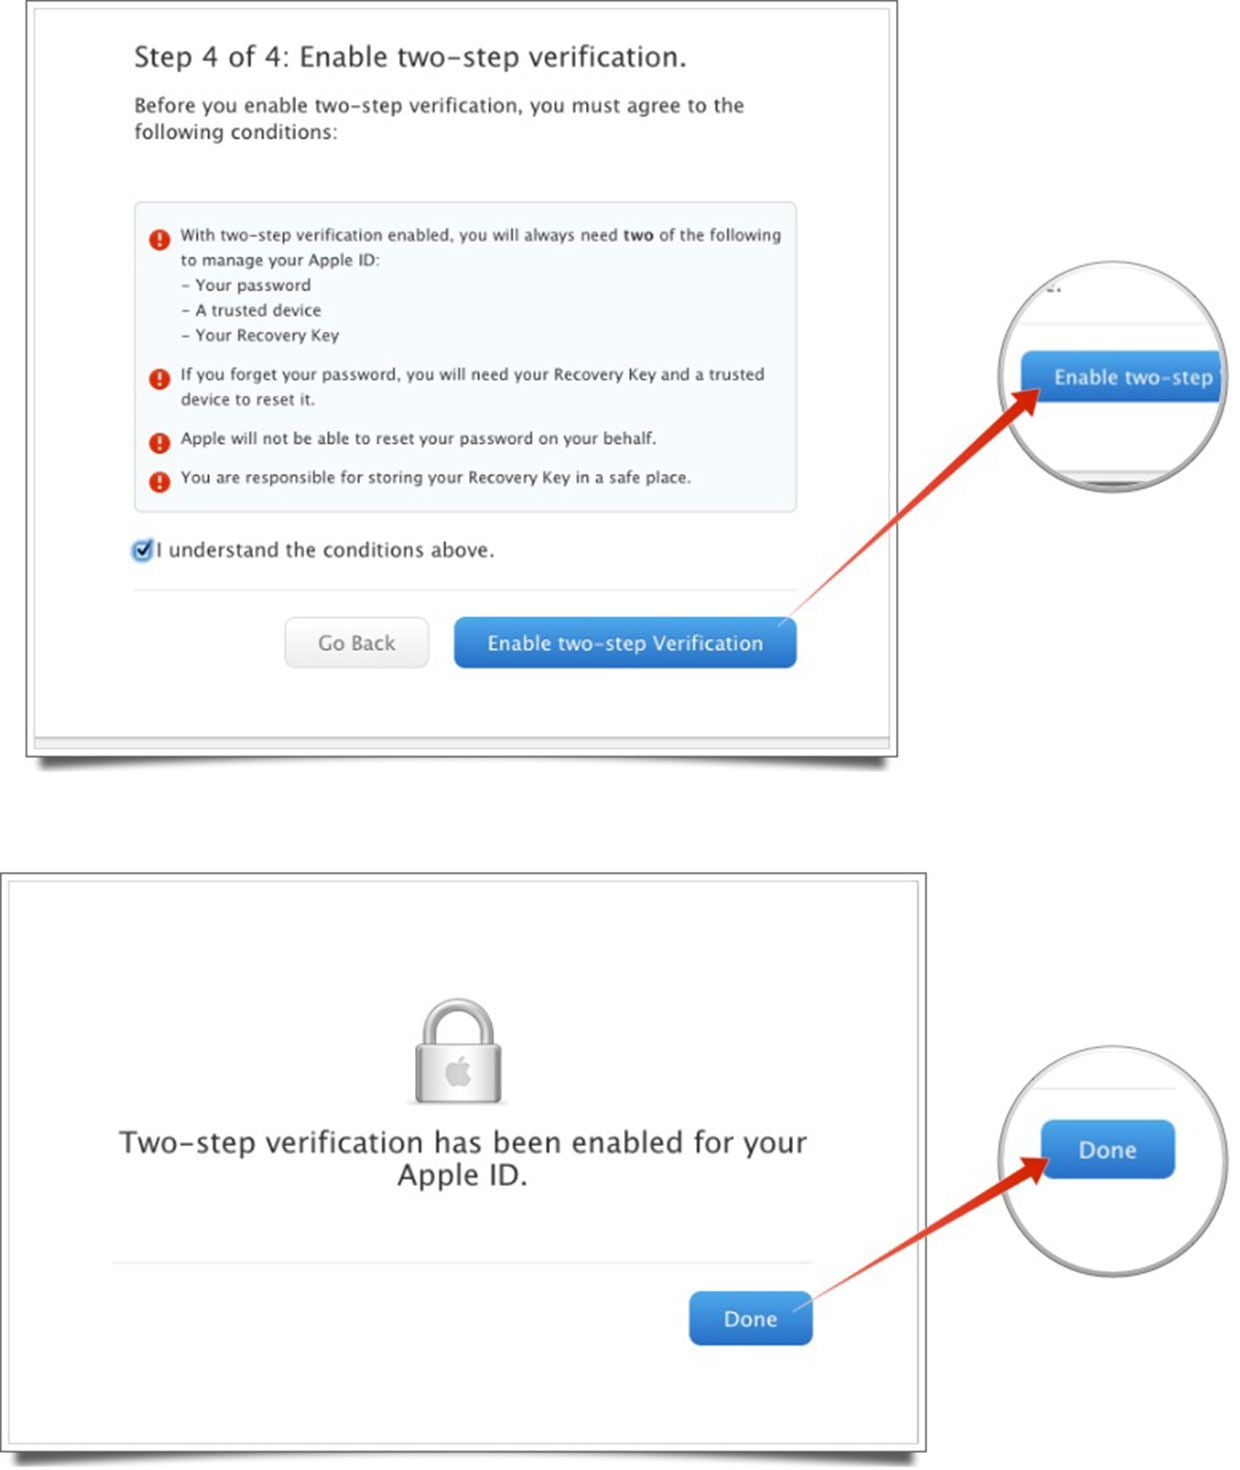 How To Enable Two Step Verification For Apple Id Enabling Apple